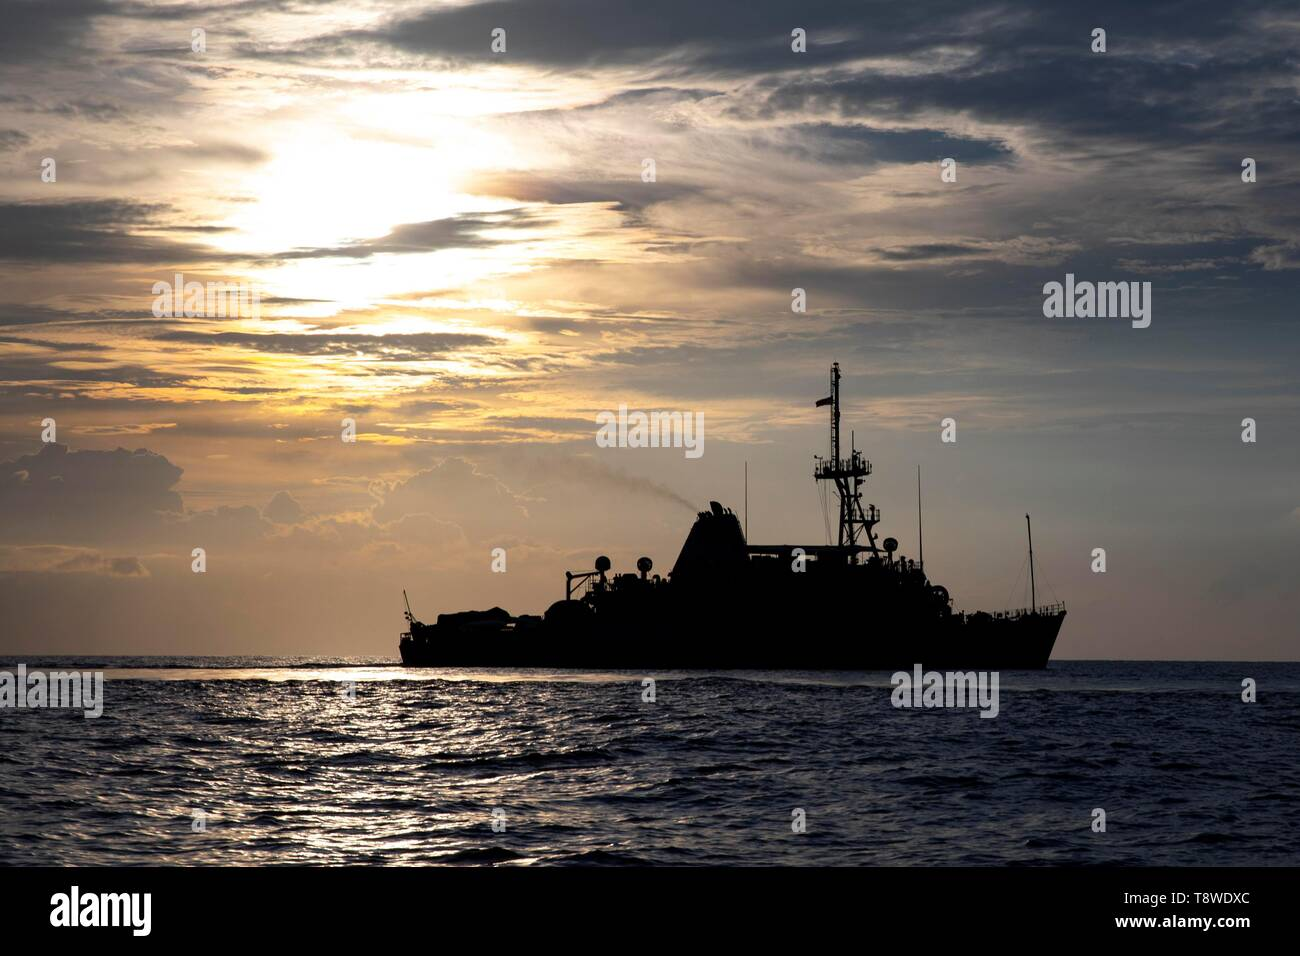 190508-N-AD347-1266 SOUTH CHINA SEA (May 8, 2019) The Avenger-class mine countermeasures ship USS Pioneer (MCM 9) underway. Pioneer, part of Mine Countermeasures Squadron 7, is operating in the U.S. 7th Fleet area of operations to enhance interoperability with partners and serve as a ready-response platform for contingency operations. (U.S. Navy photo by Lt. j.g. Alexander Fairbanks) - Stock Image